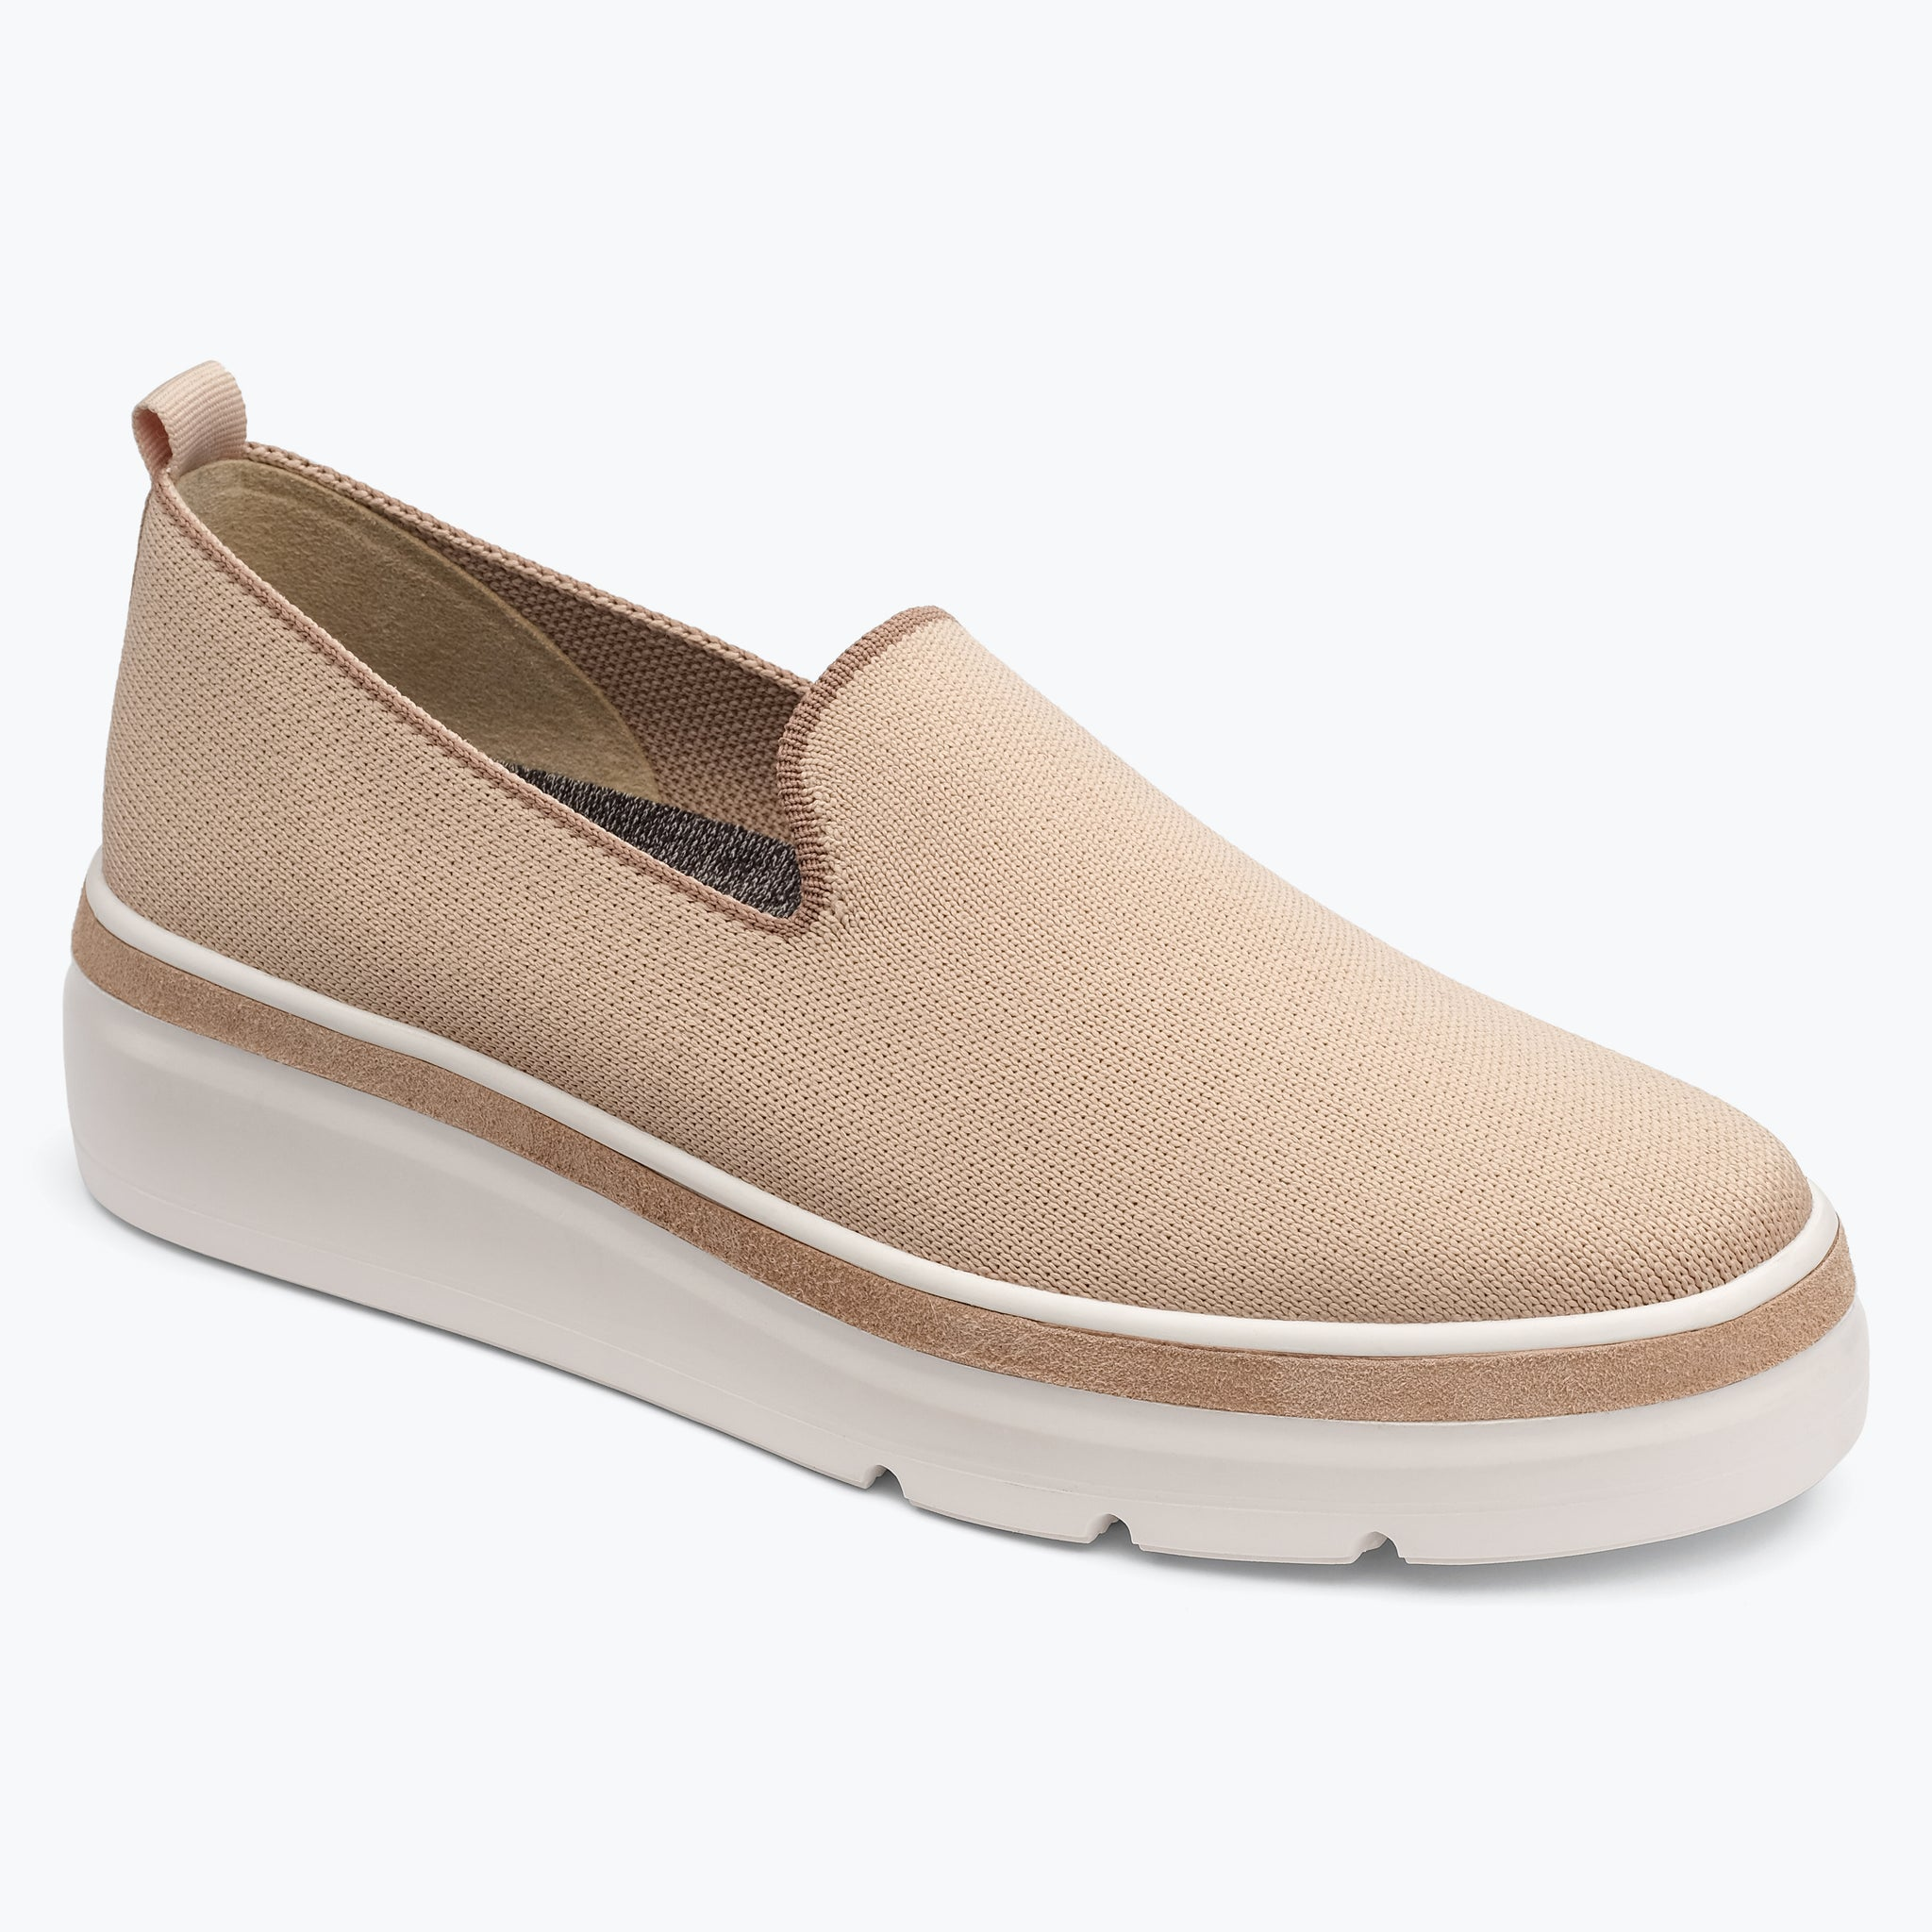 Sutton Knit Sneaker - Oatmeal